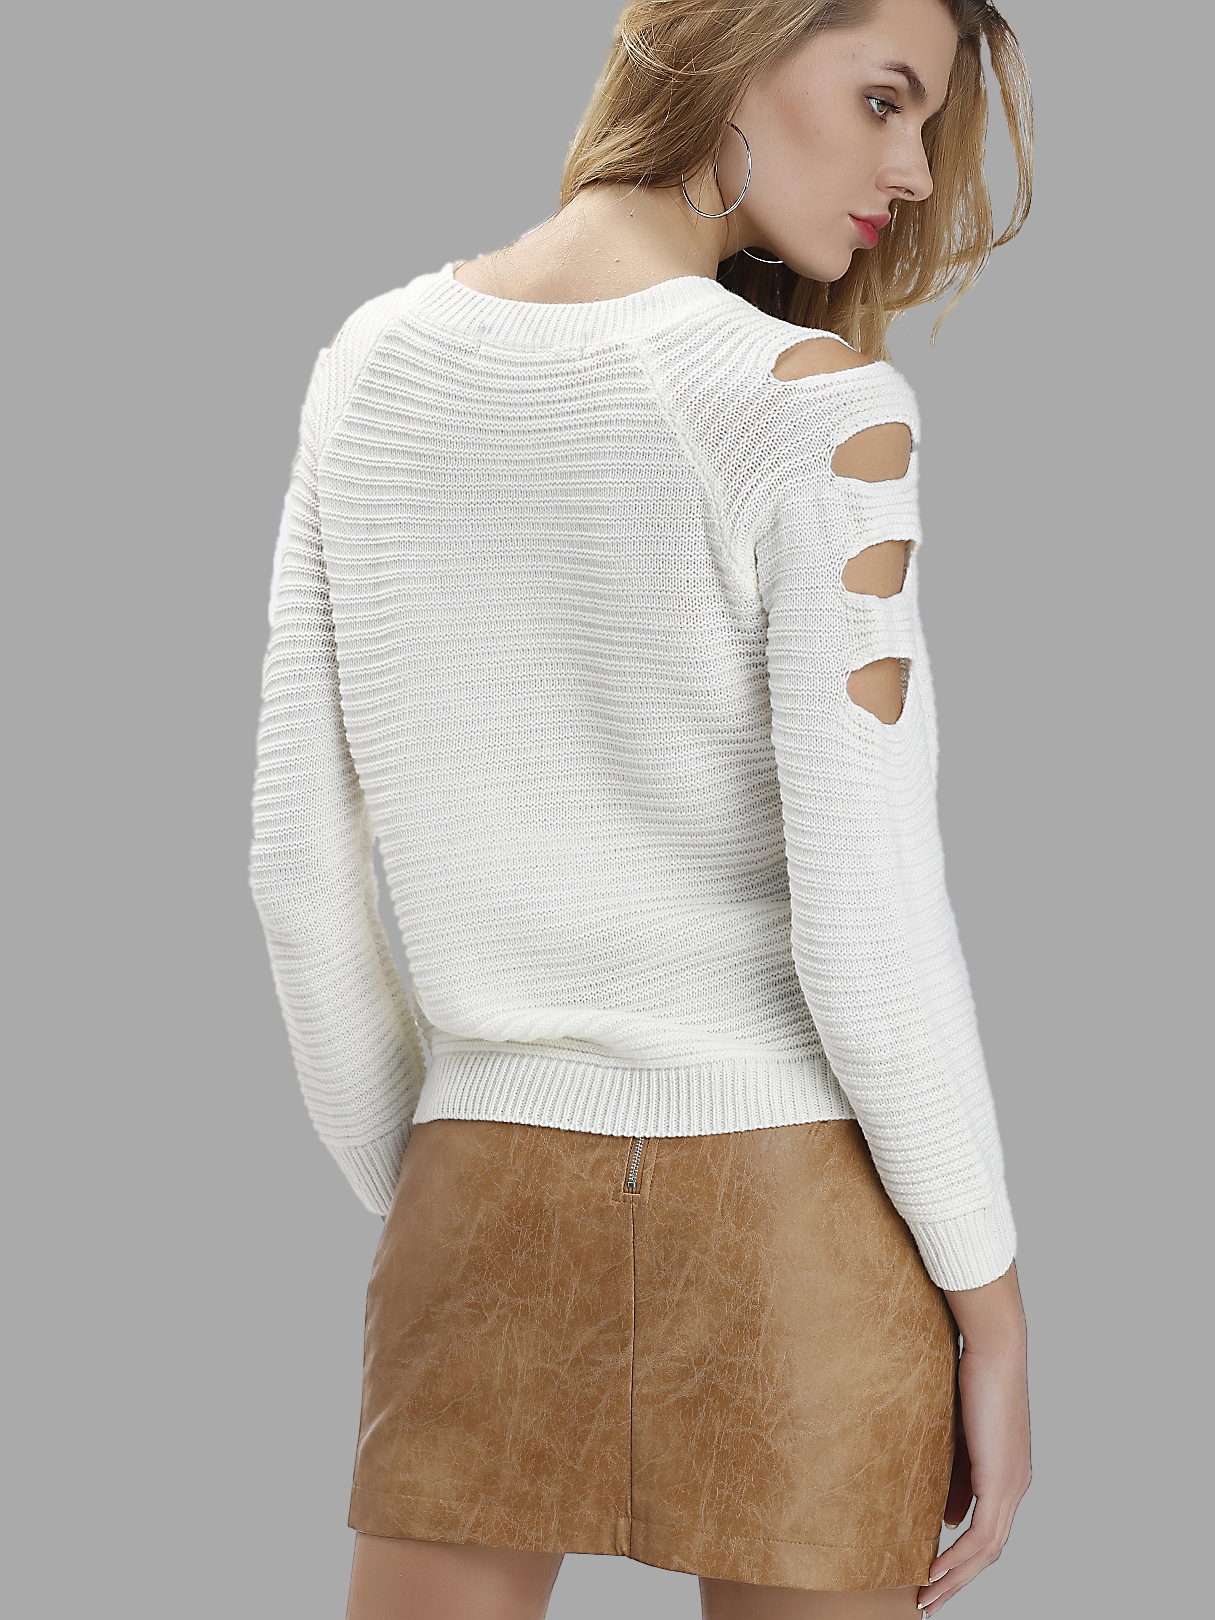 White Round Neck Hollow Out Sweater